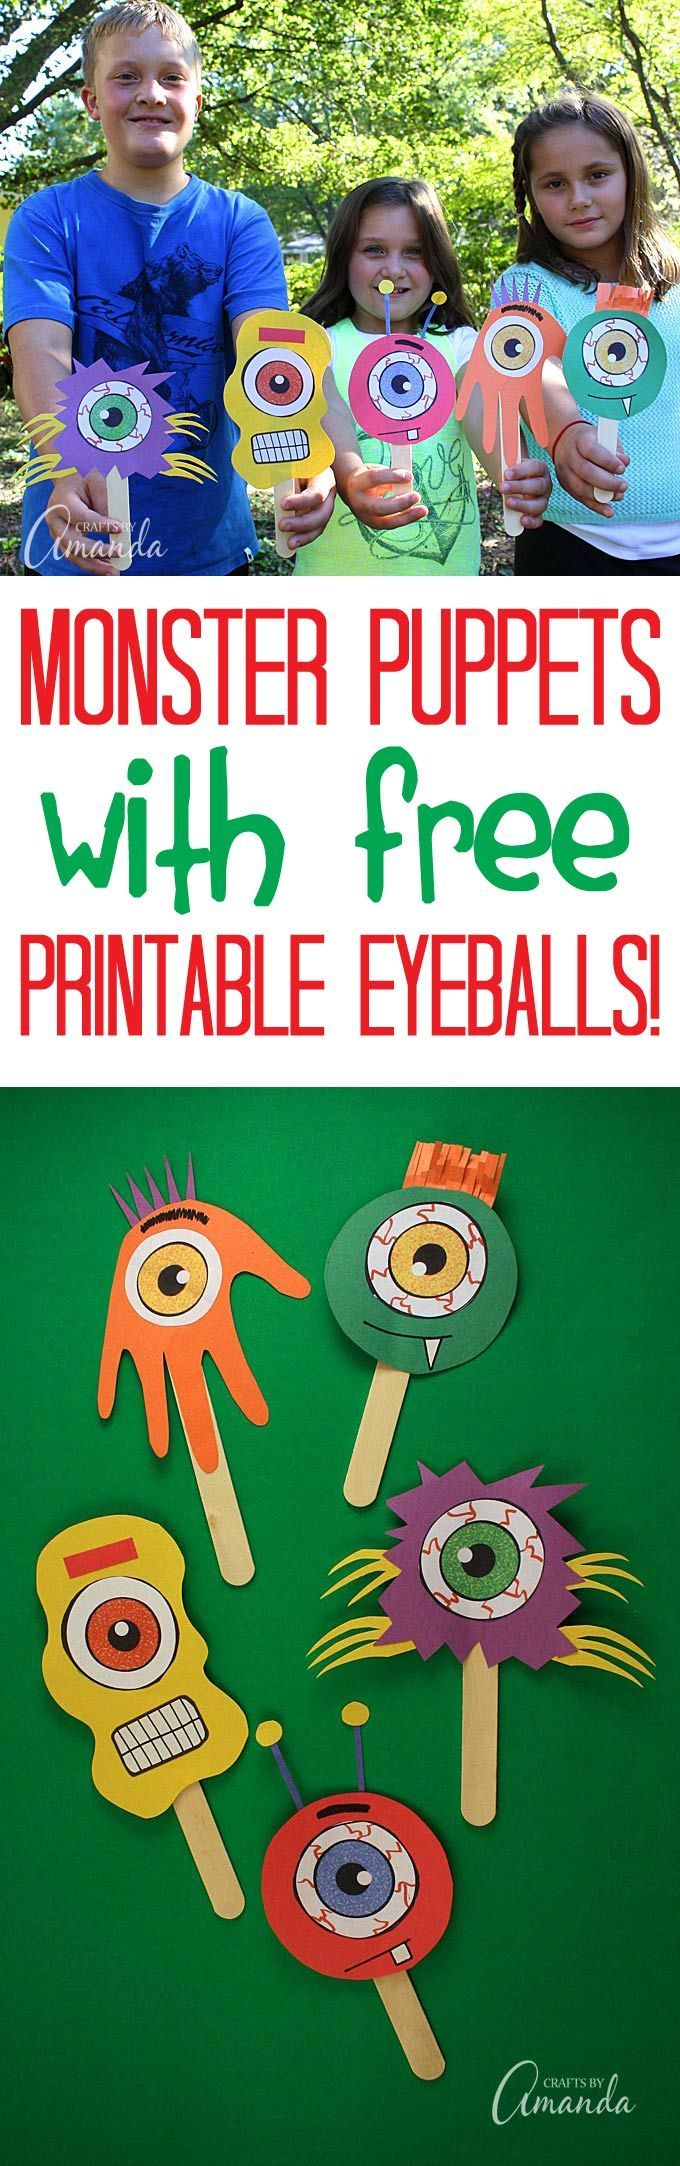 Use craft sticks and construction paper to make an endless assortment of silly popsicle stick monster puppets!